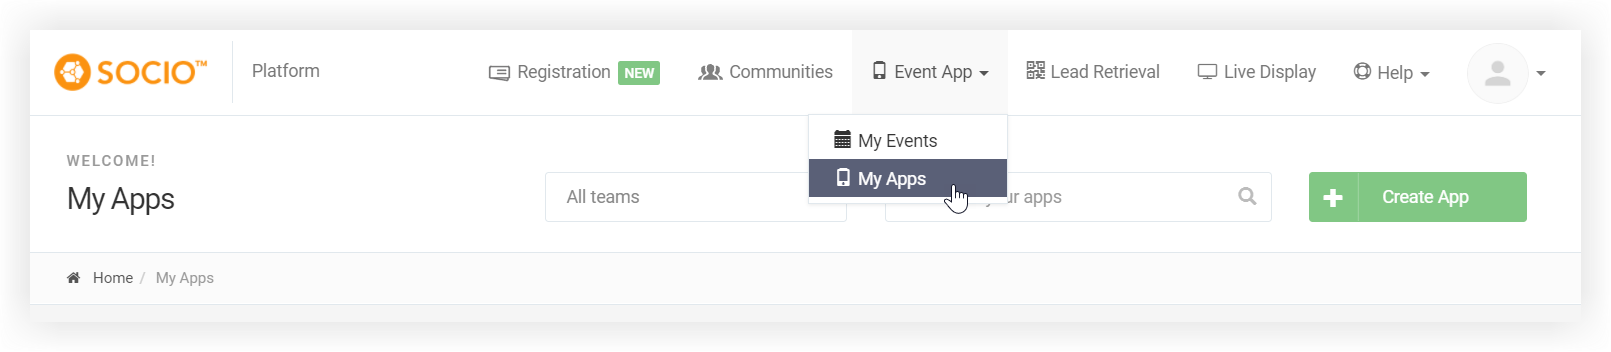 Screenshot of the Socio platform with the Event App menu expanded and the My Apps selection highlighted.